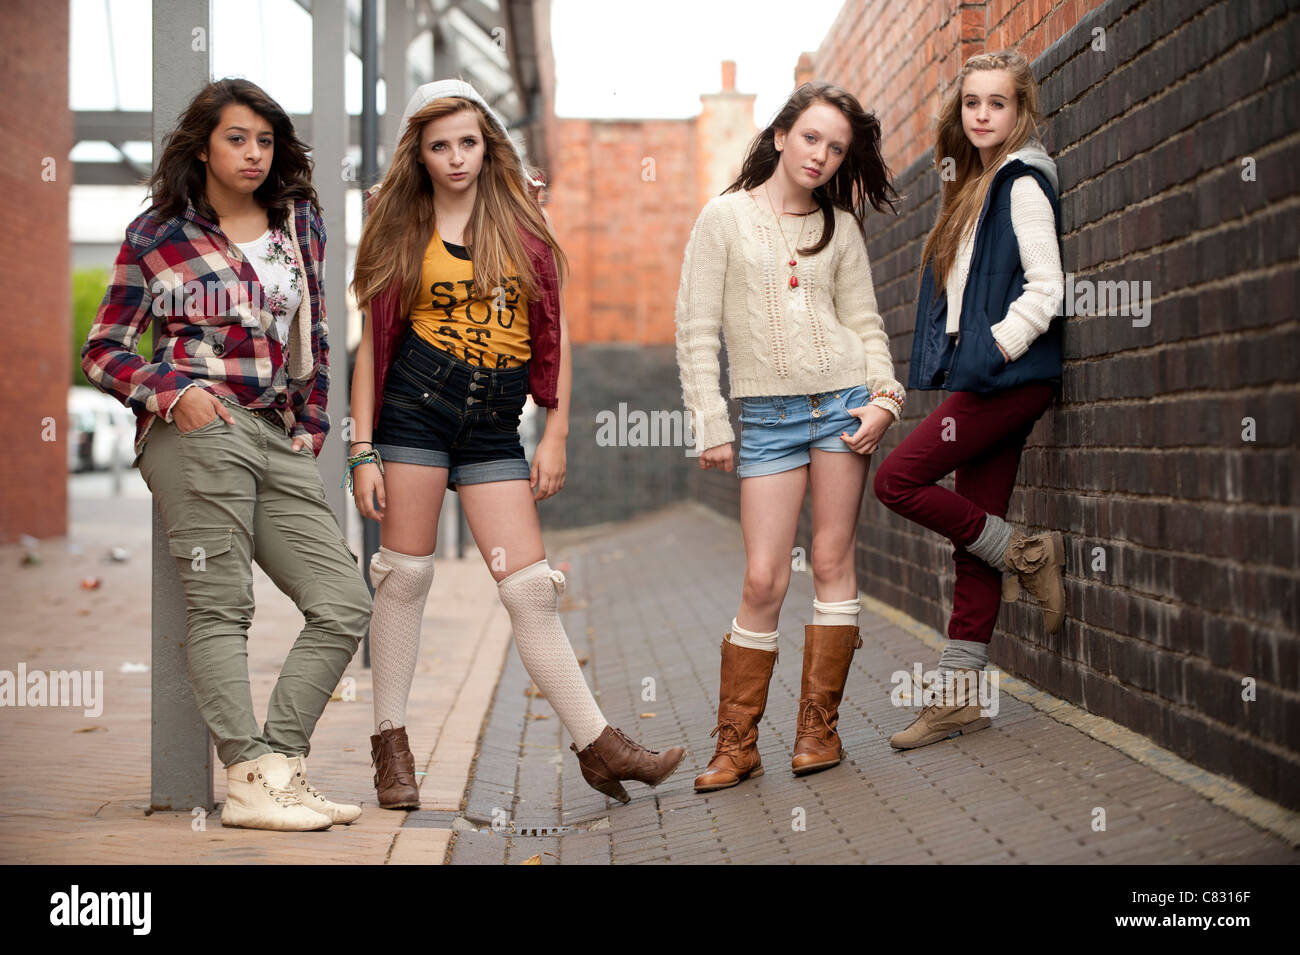 A Group Of 4 Four 13 Year Old Teenage Girls Moody With